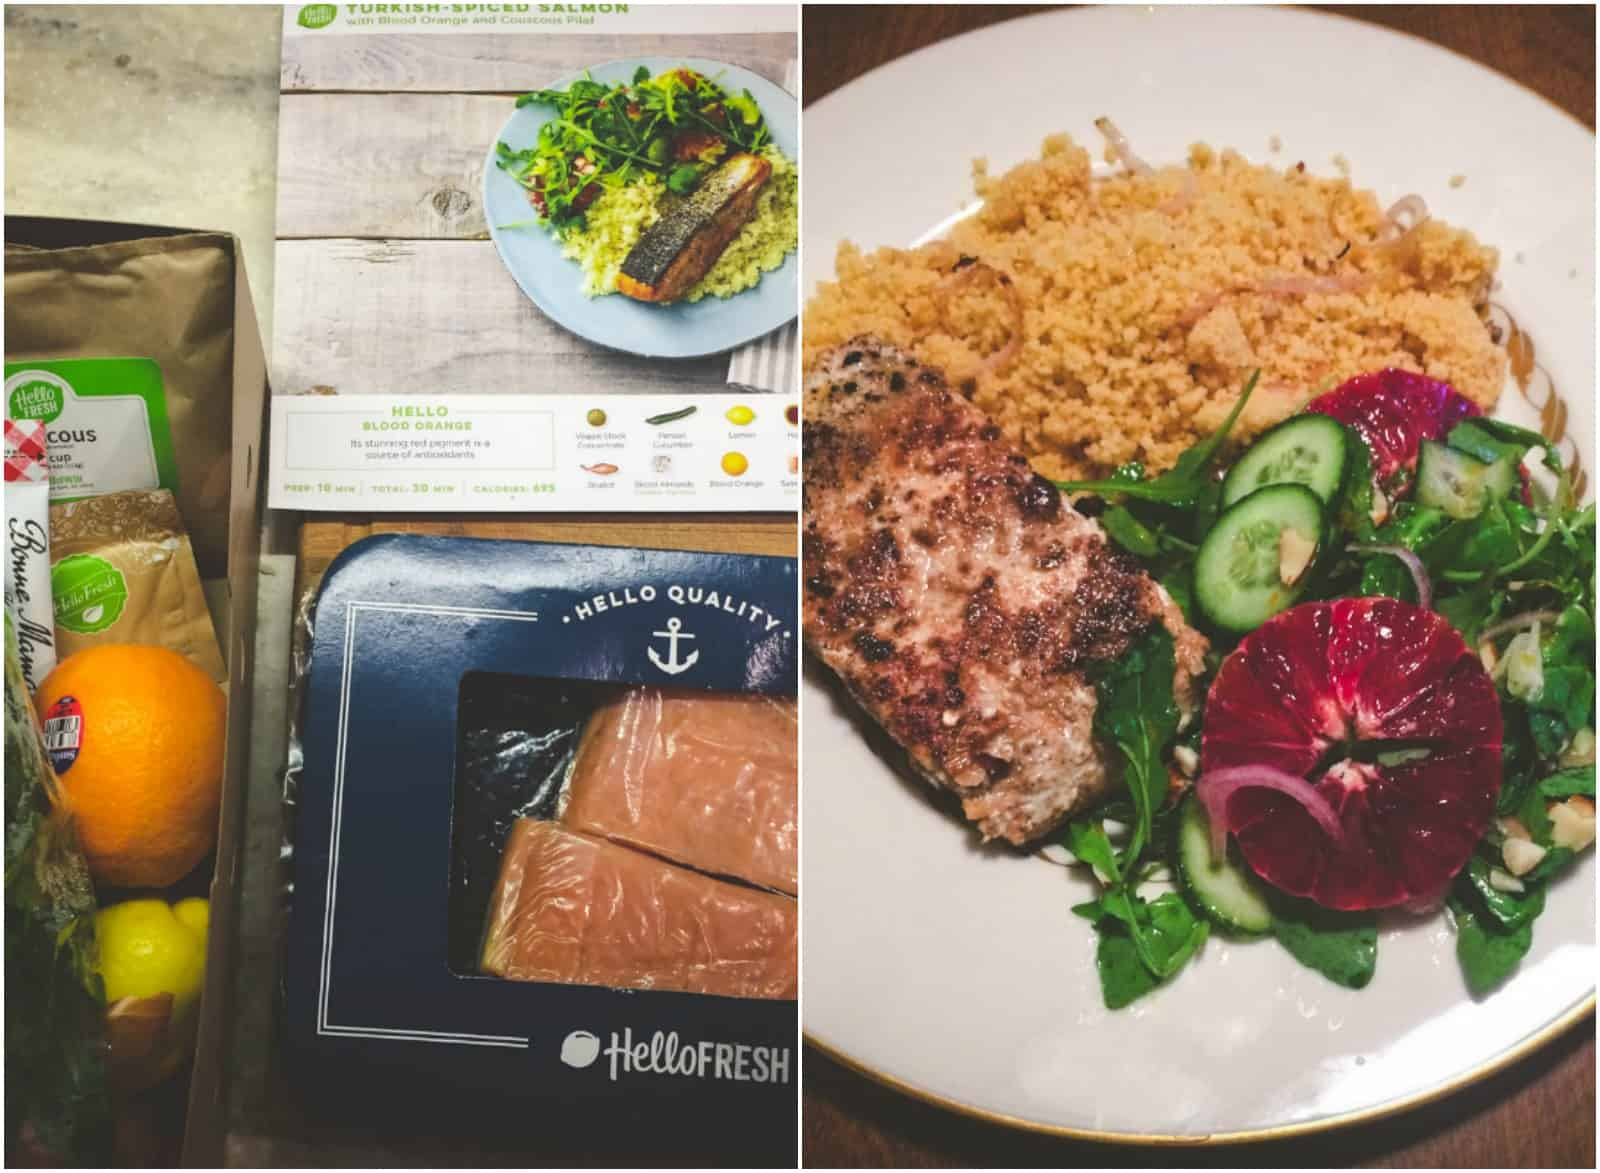 Hellofresh Comparisons